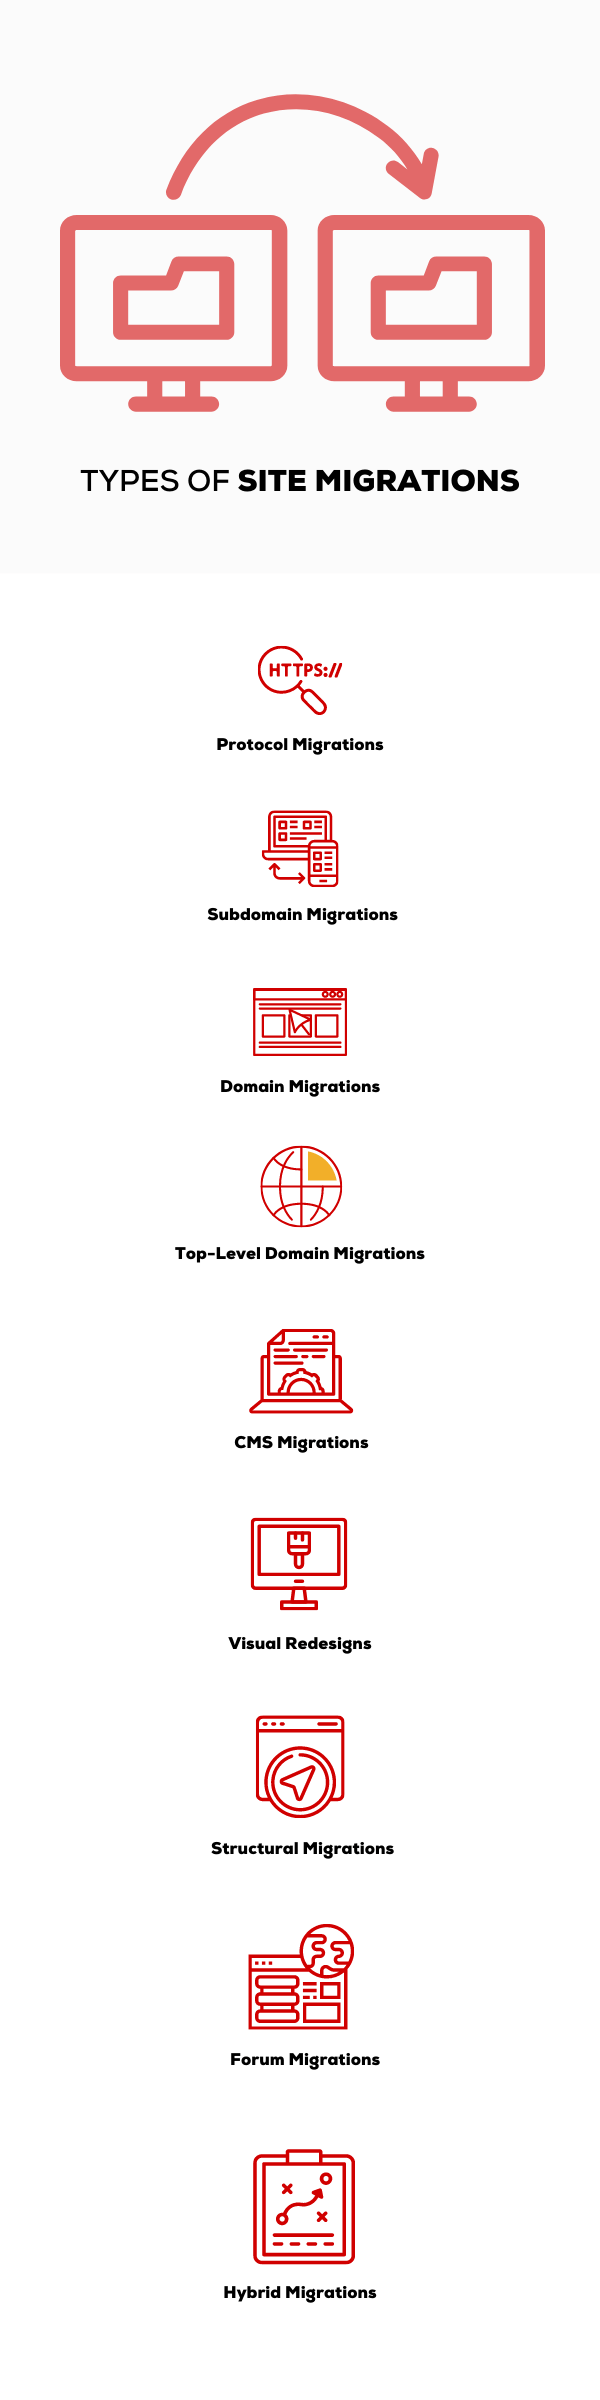 Types of Website Migrations Listed